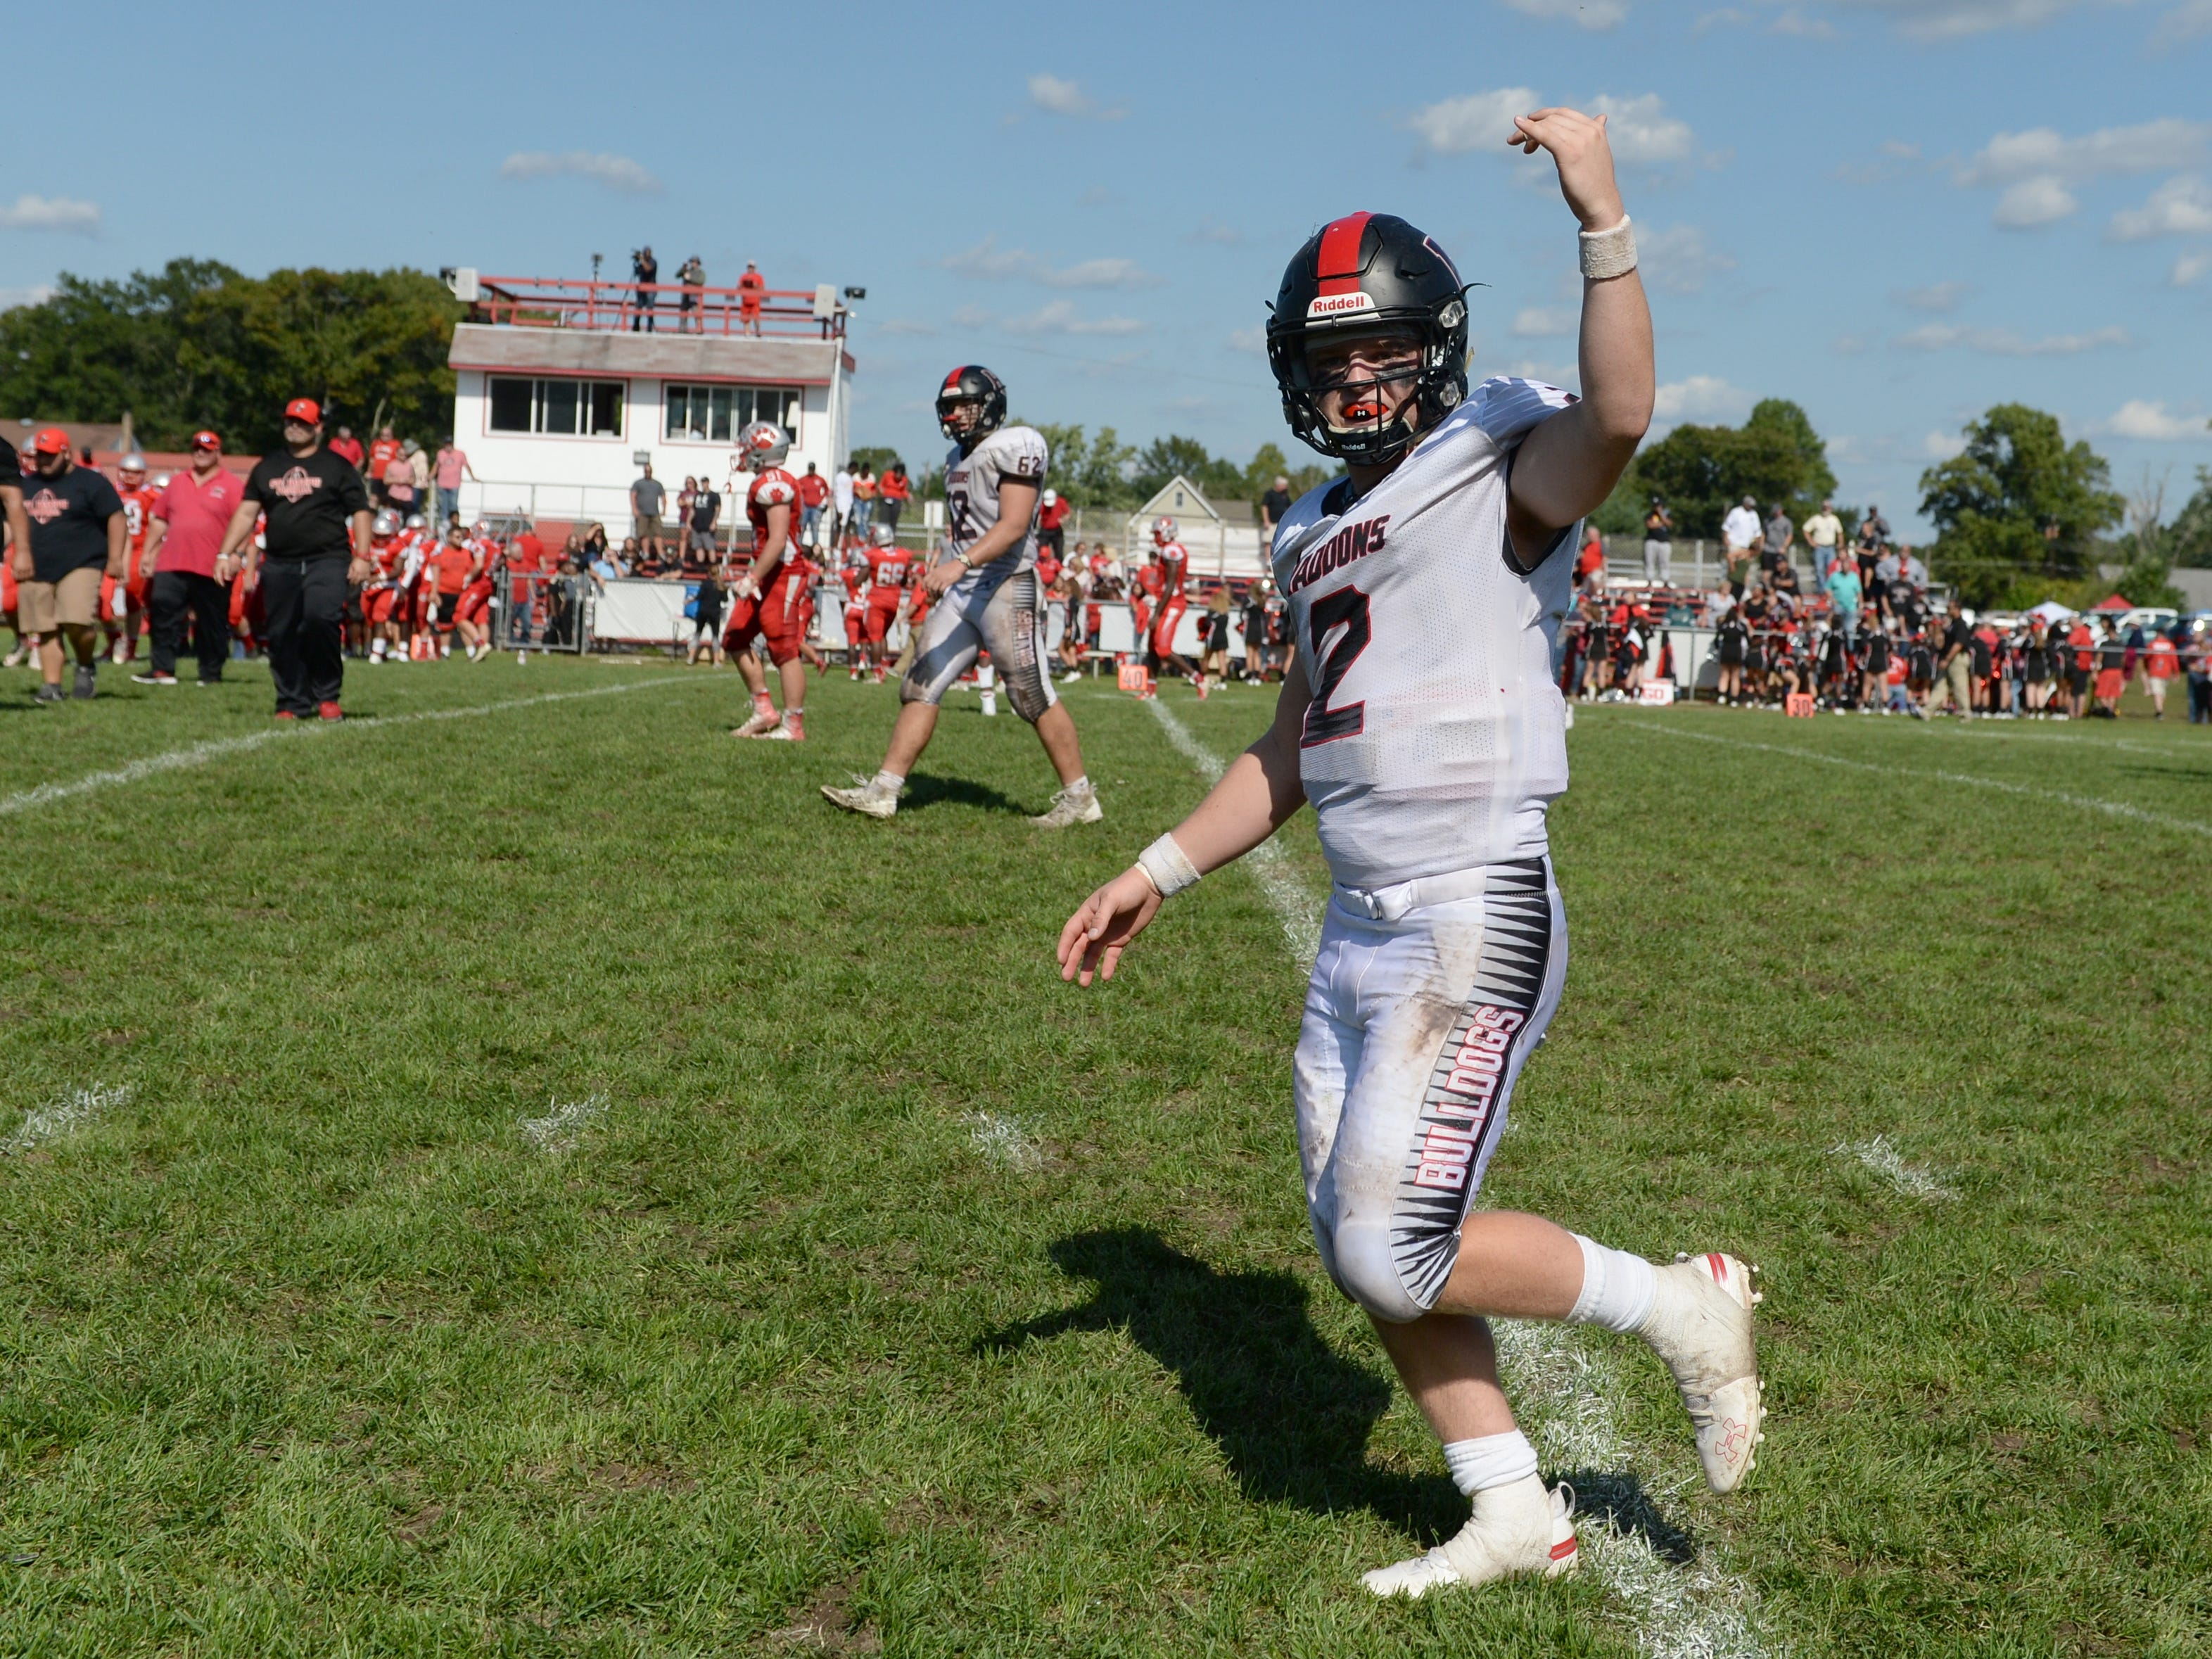 Haddonfield quarter back Jay Foley signals his teammates onto the field after defeating St. Joseph on Saturday, Sept. 29, 2018.